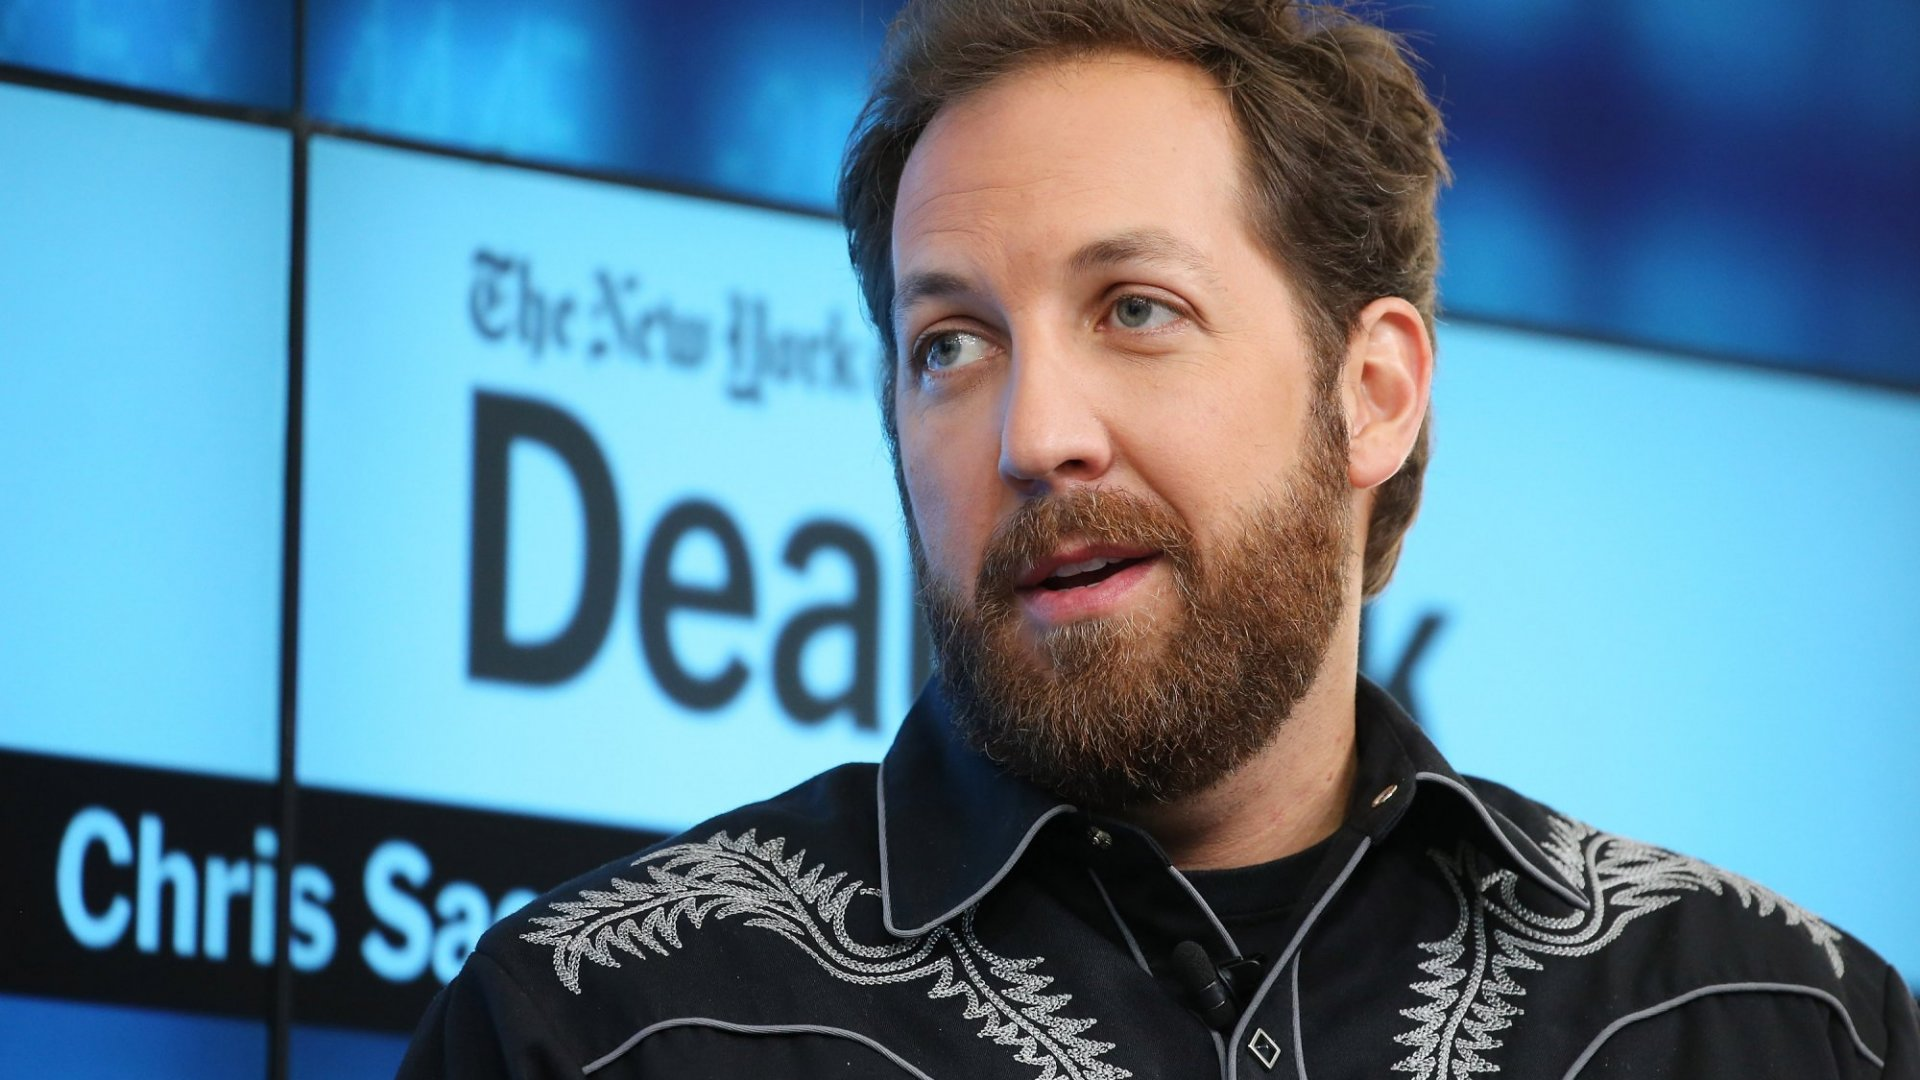 Chris Sacca: If You're 100 Percent Mentally Healthy, You Shouldn't Be an Entrepreneur